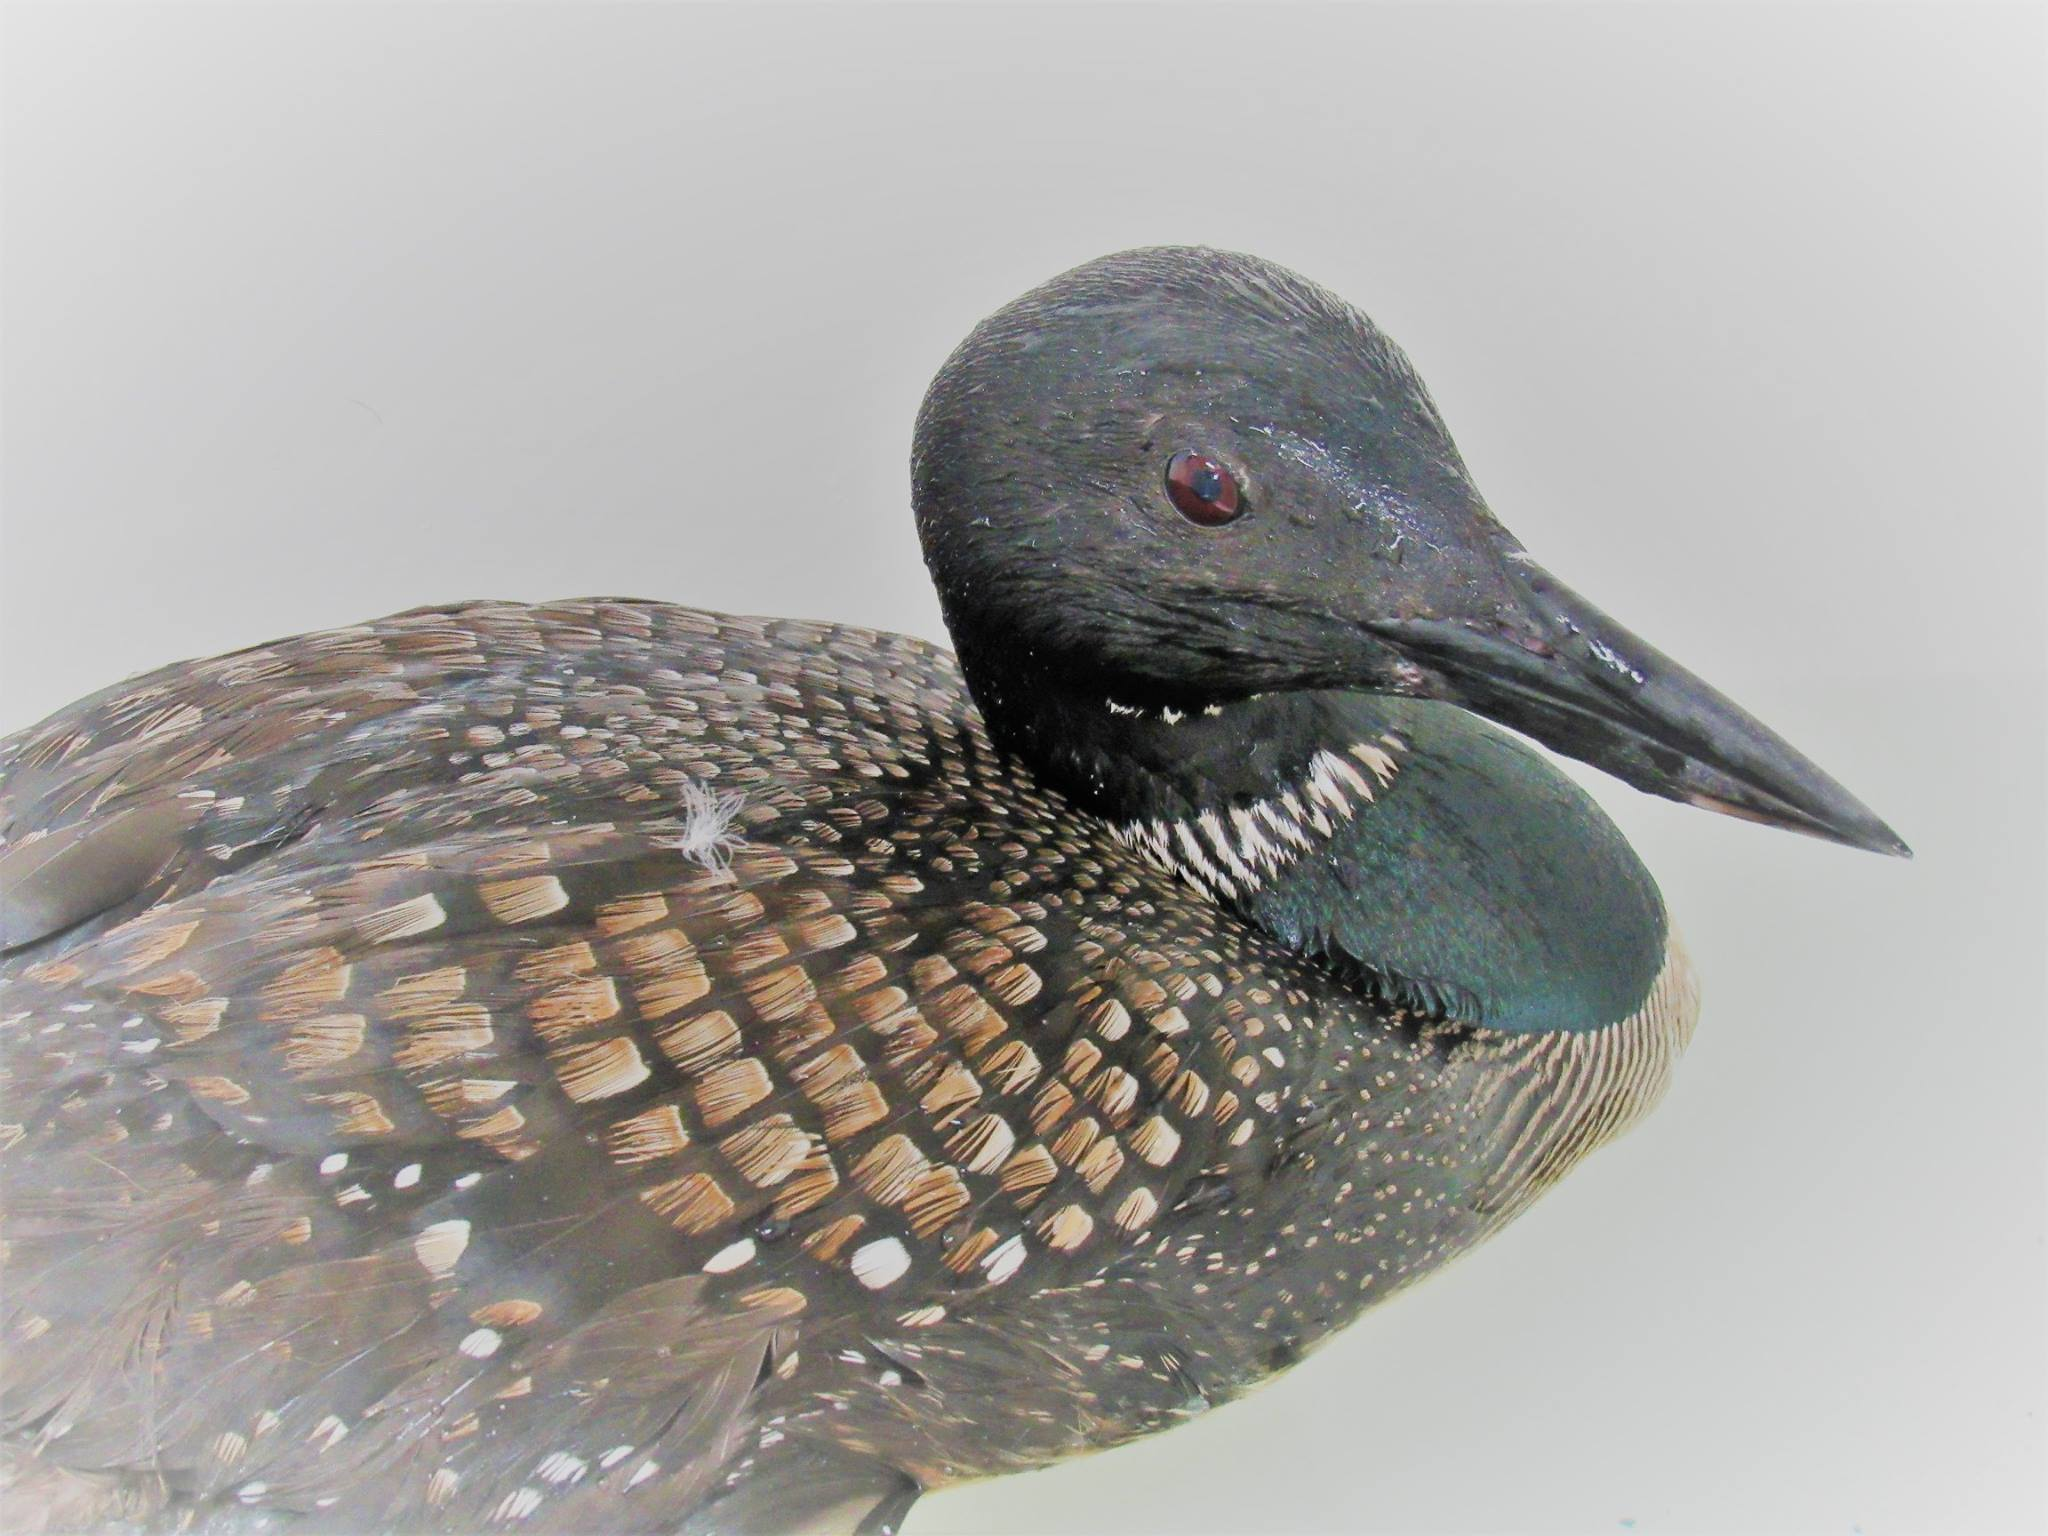 The male loon has a good appetite, but is being tested for toxins as a potential explanation for his airport landing